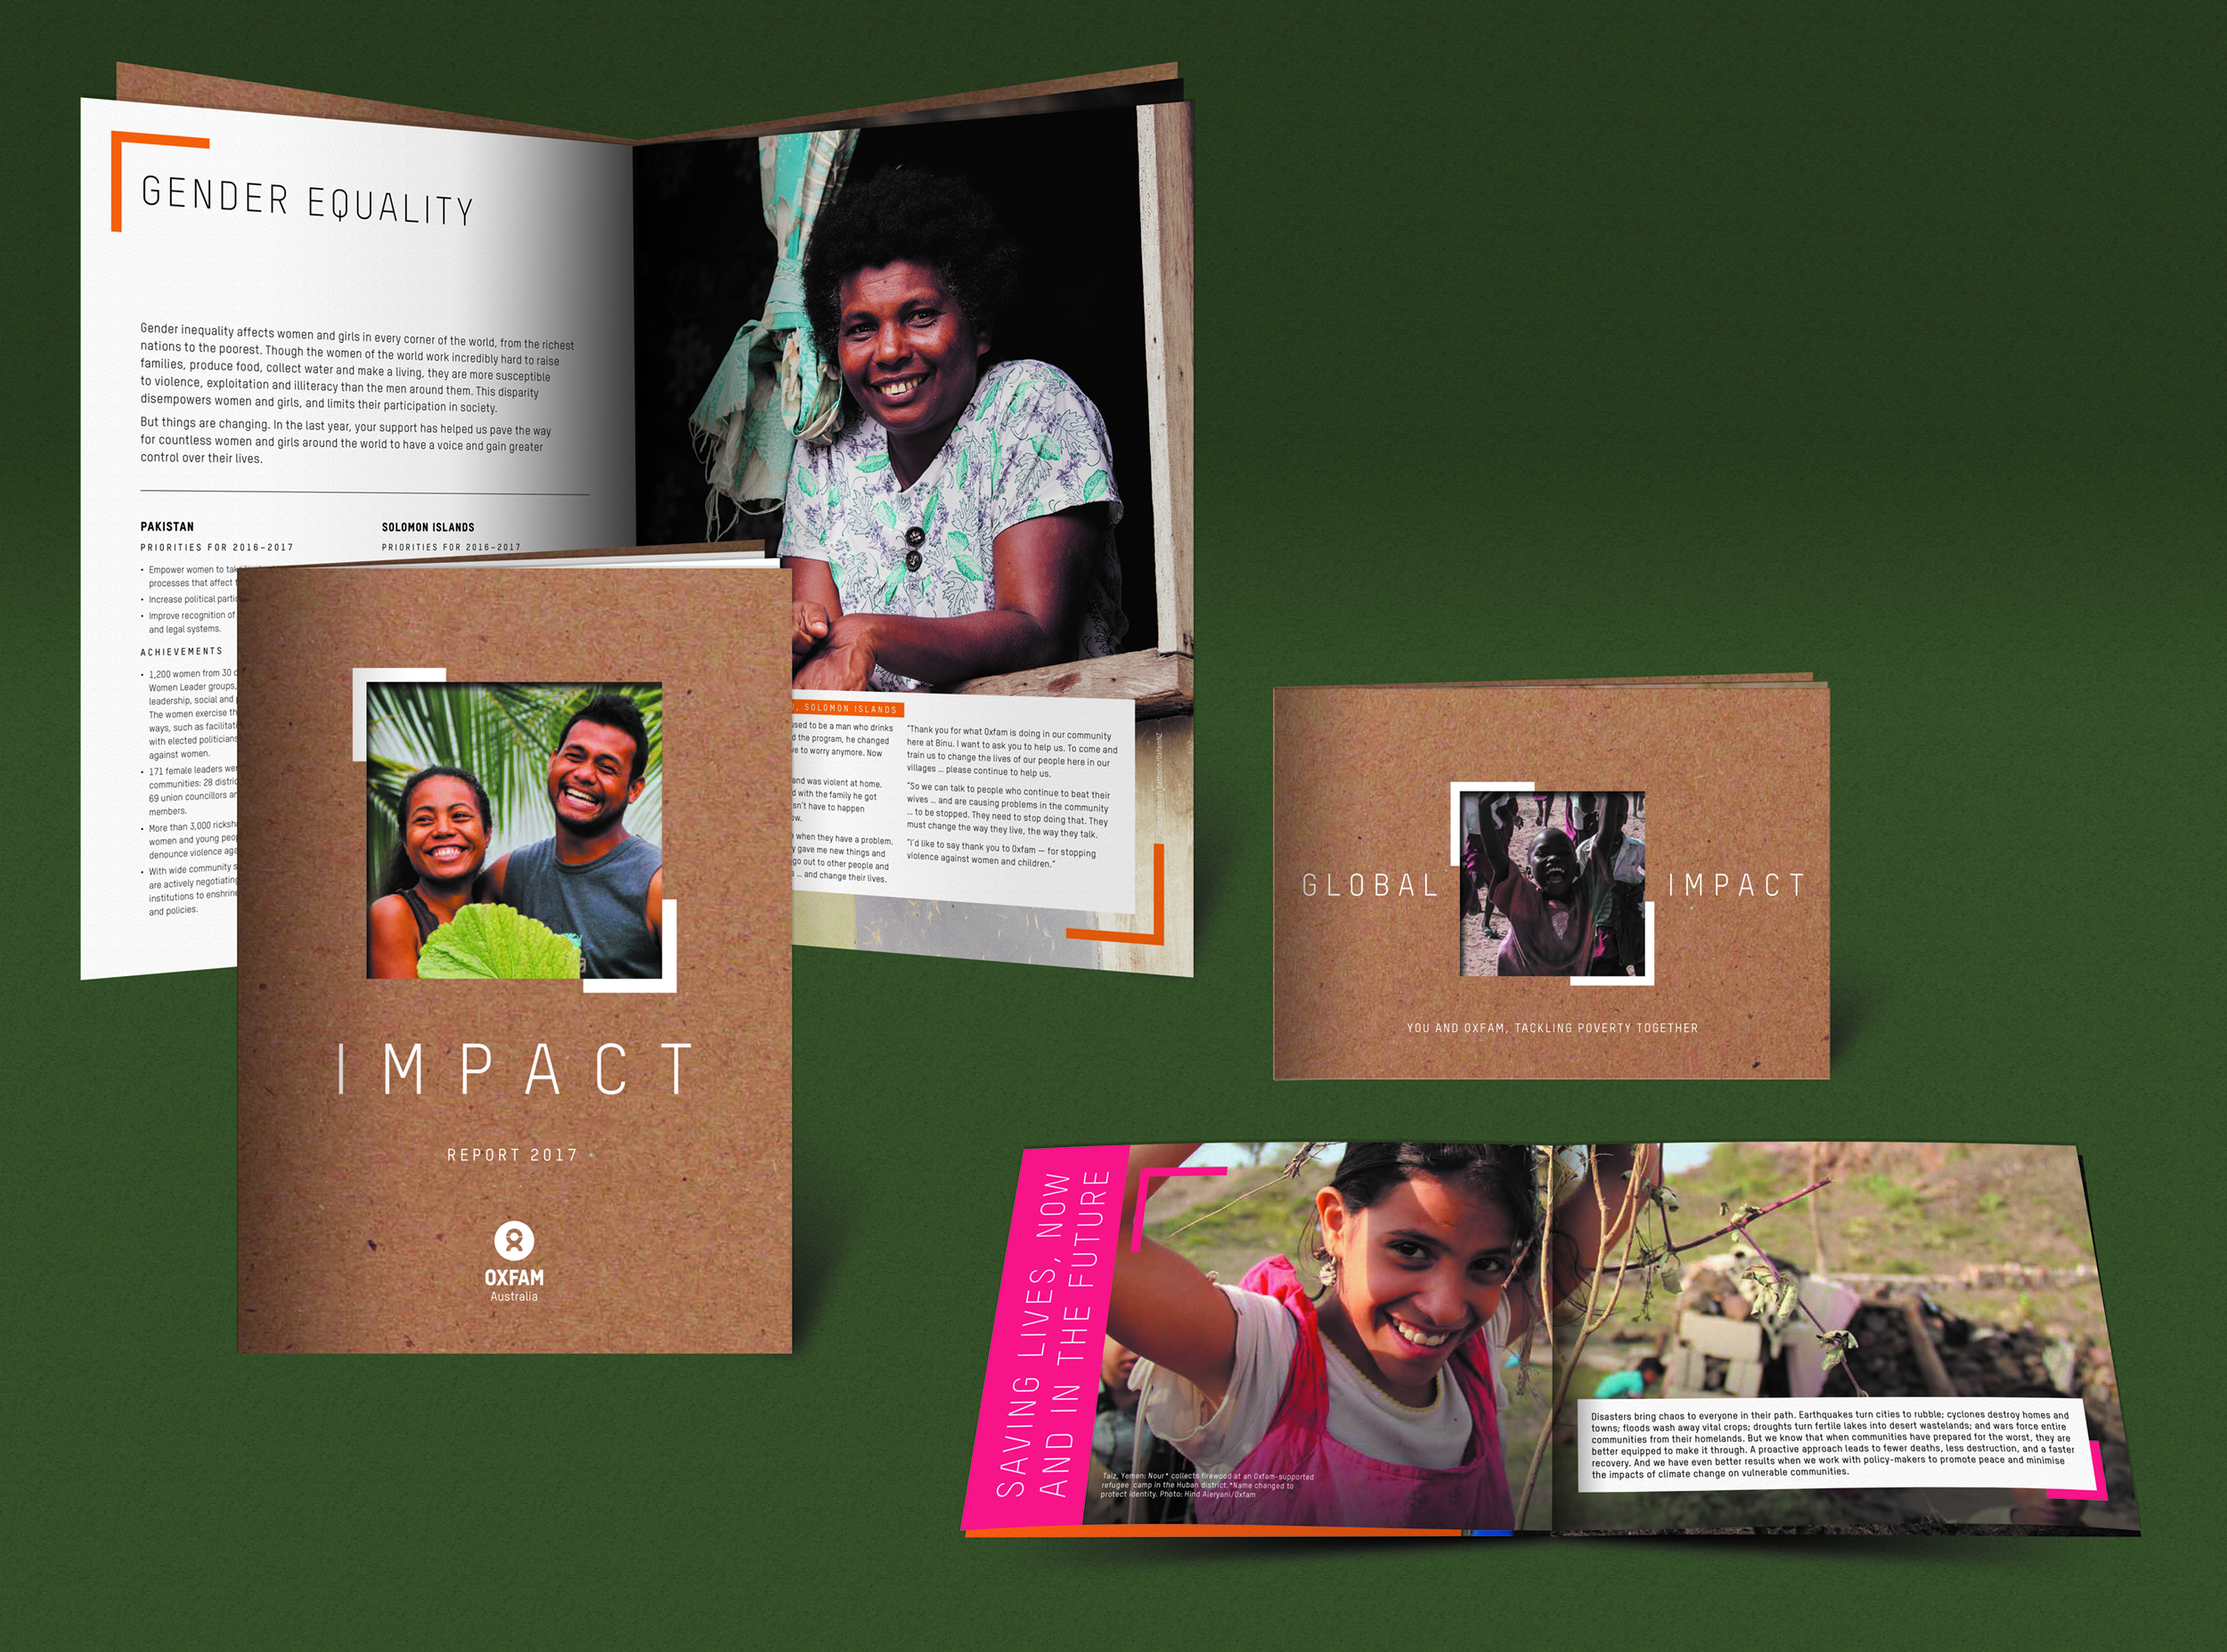 Oxfam Australia Global Impact report and booklet